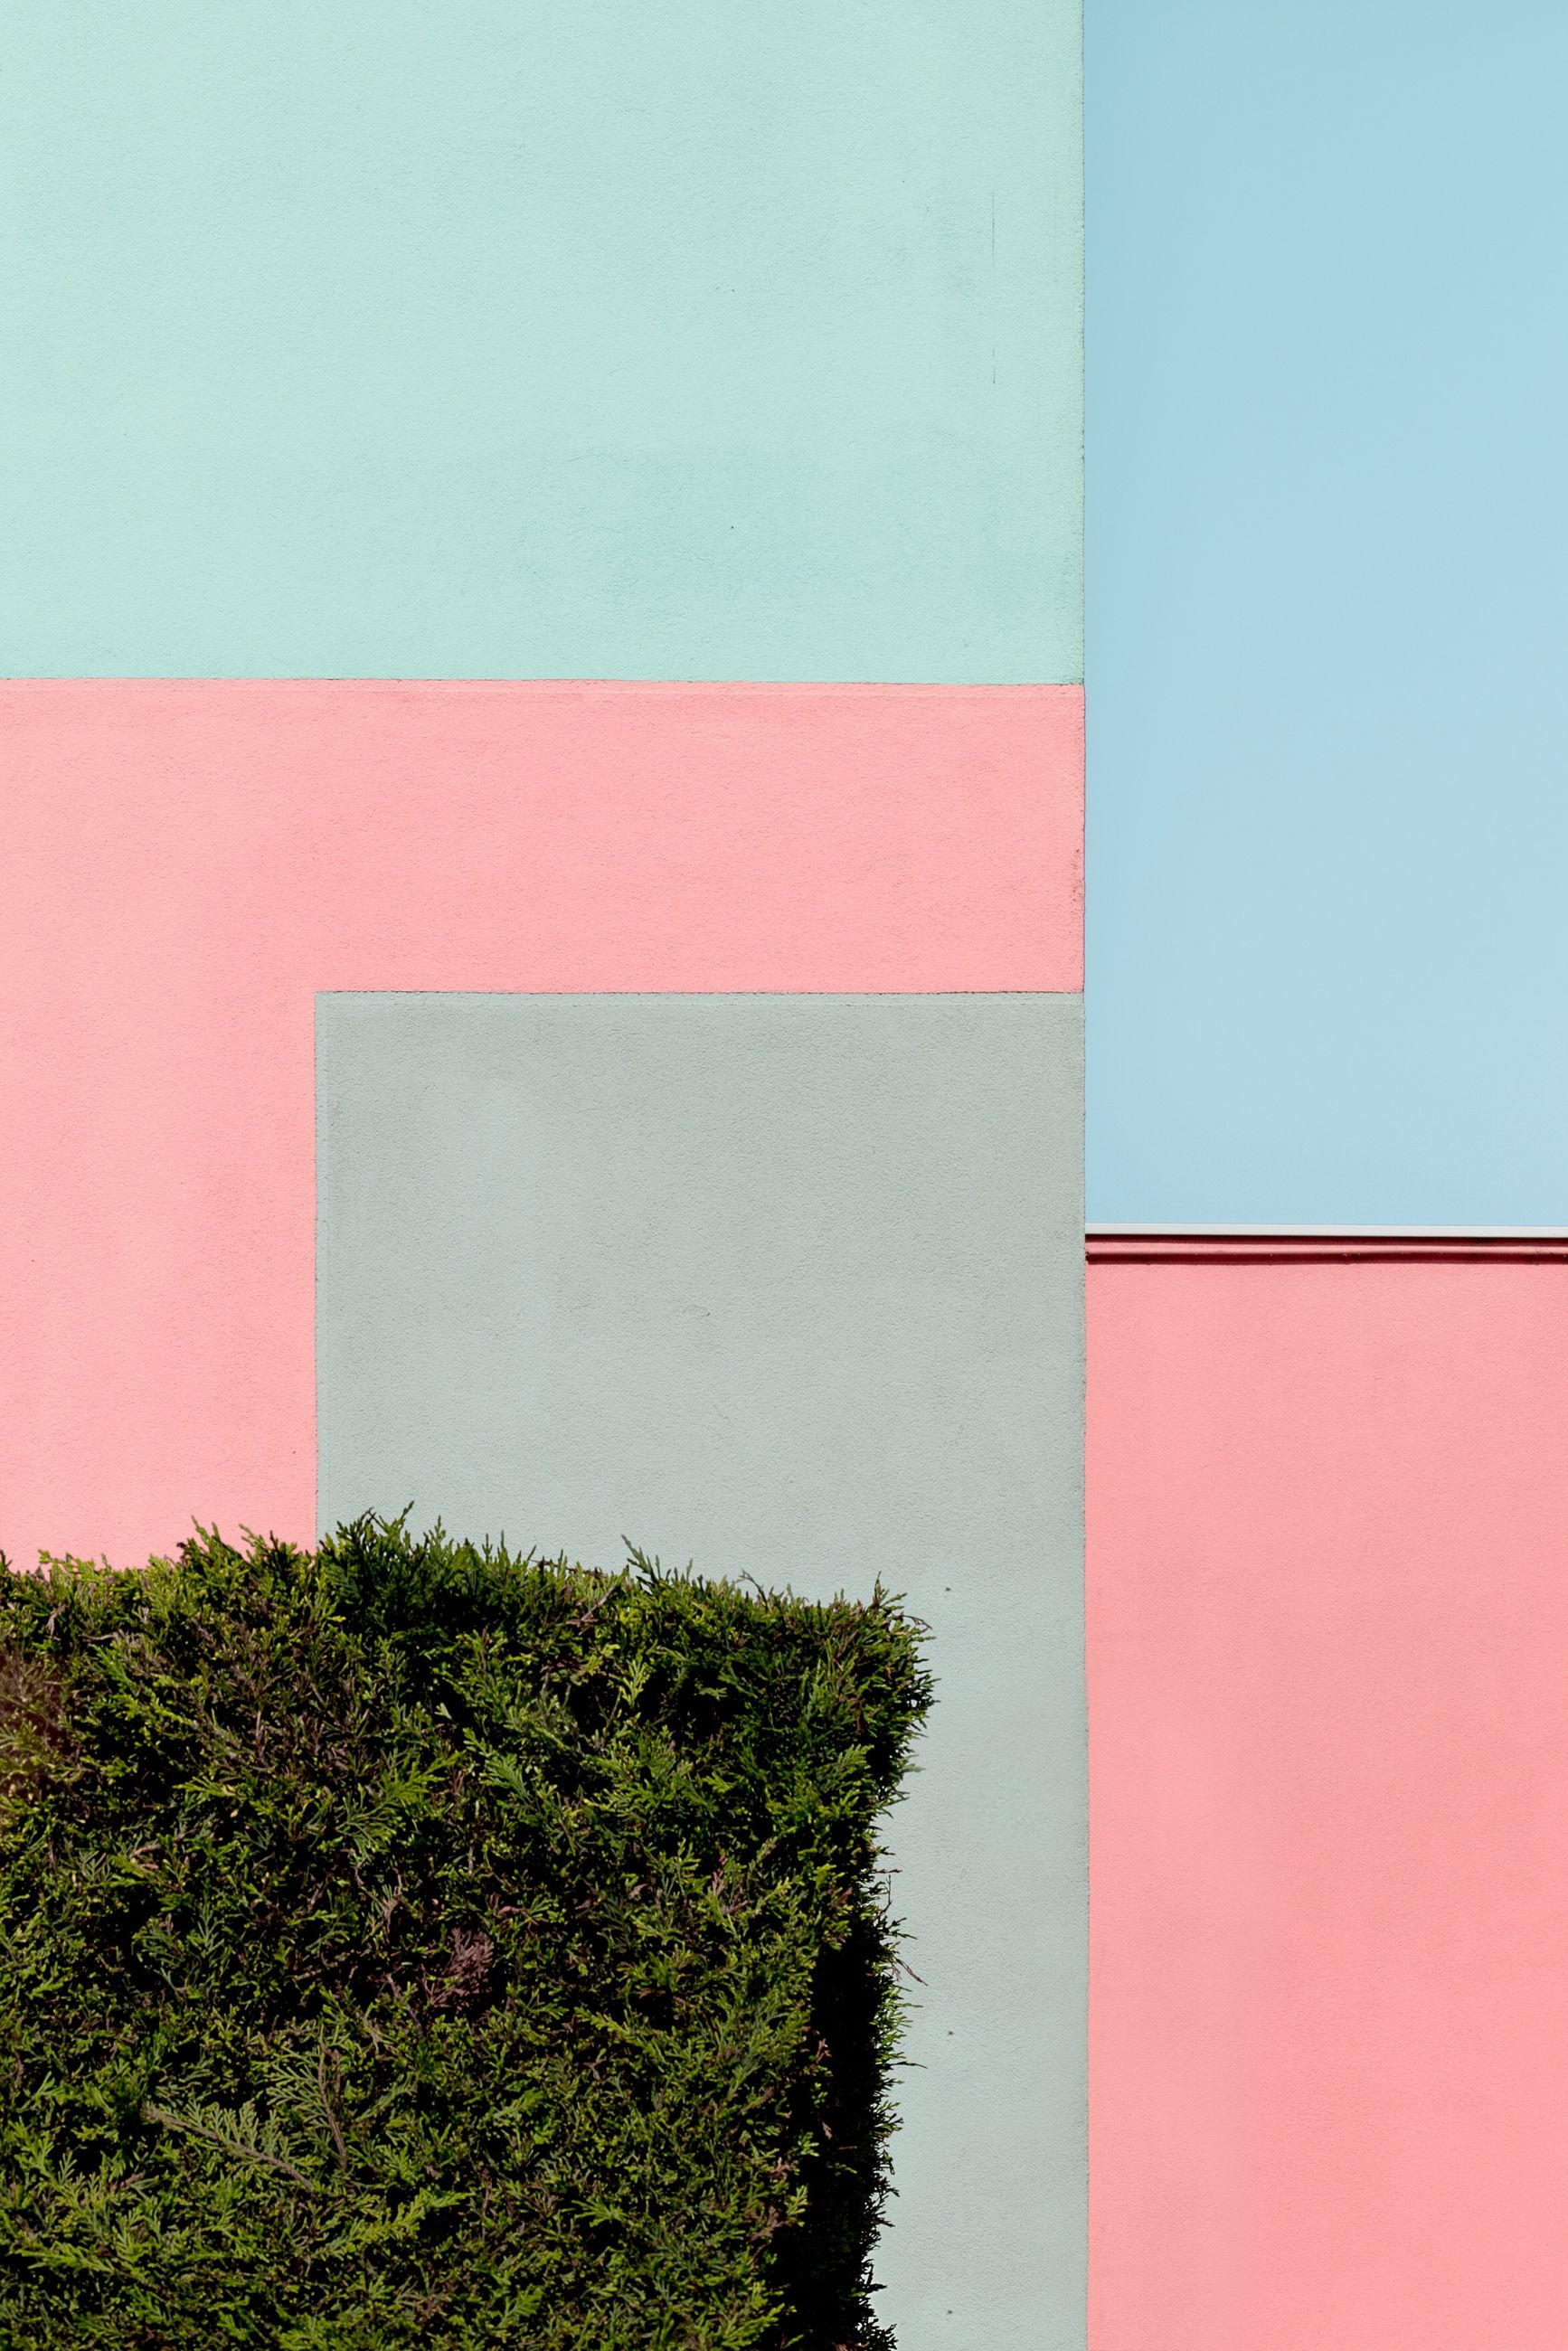 plant, architecture, wall - building feature, built structure, day, no people, blue, red, growth, copy space, green color, building exterior, pink color, nature, outdoors, building, sky, wall, multi colored, tree